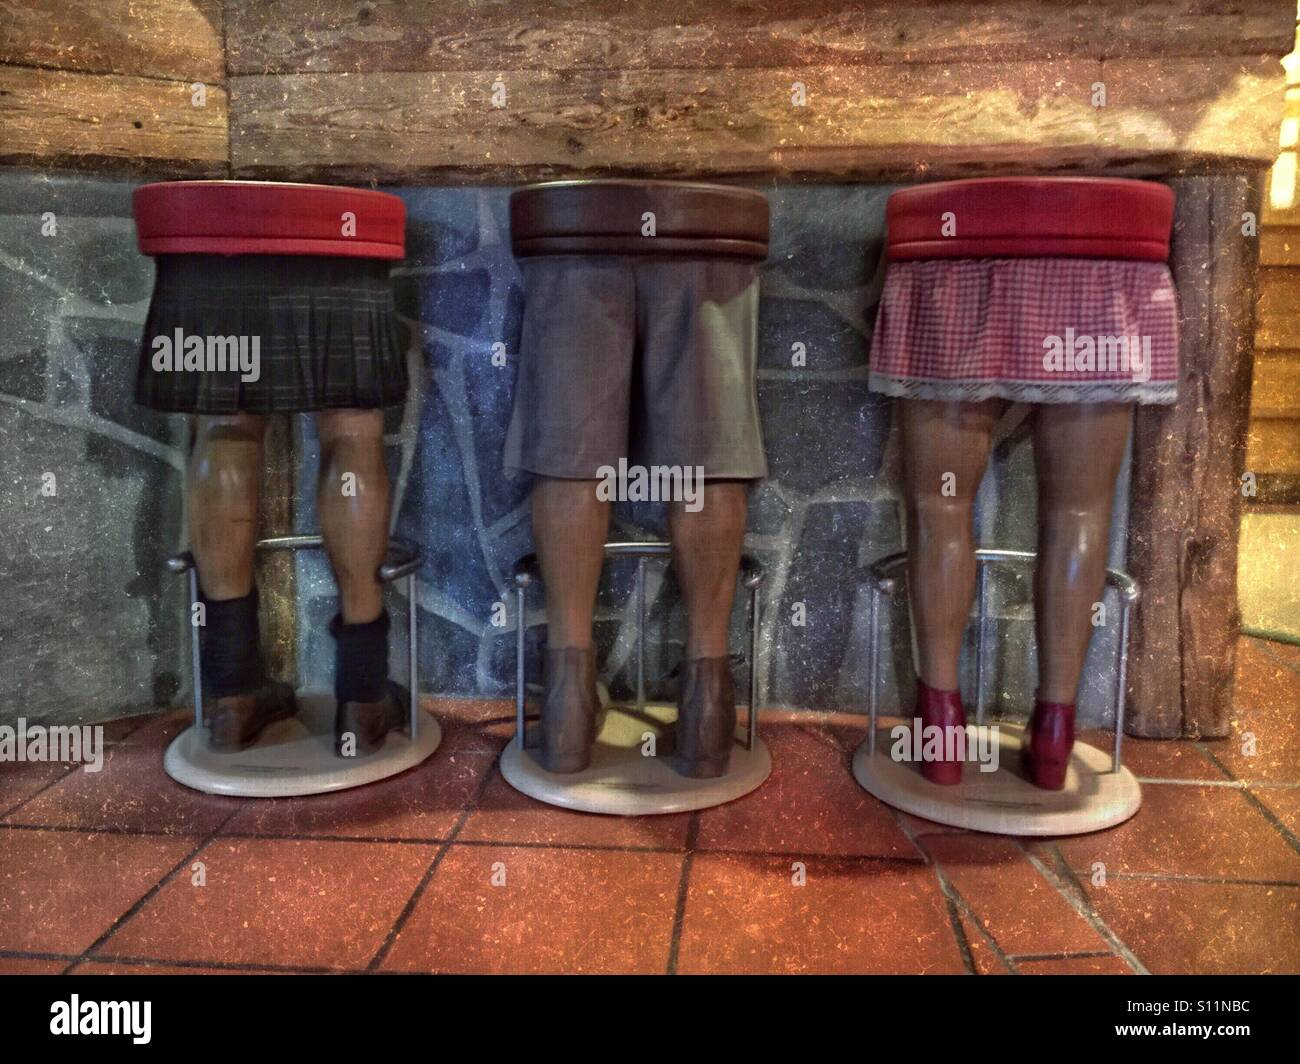 Funny Bar Stools In The Shape Of Human Legs Stock Photo